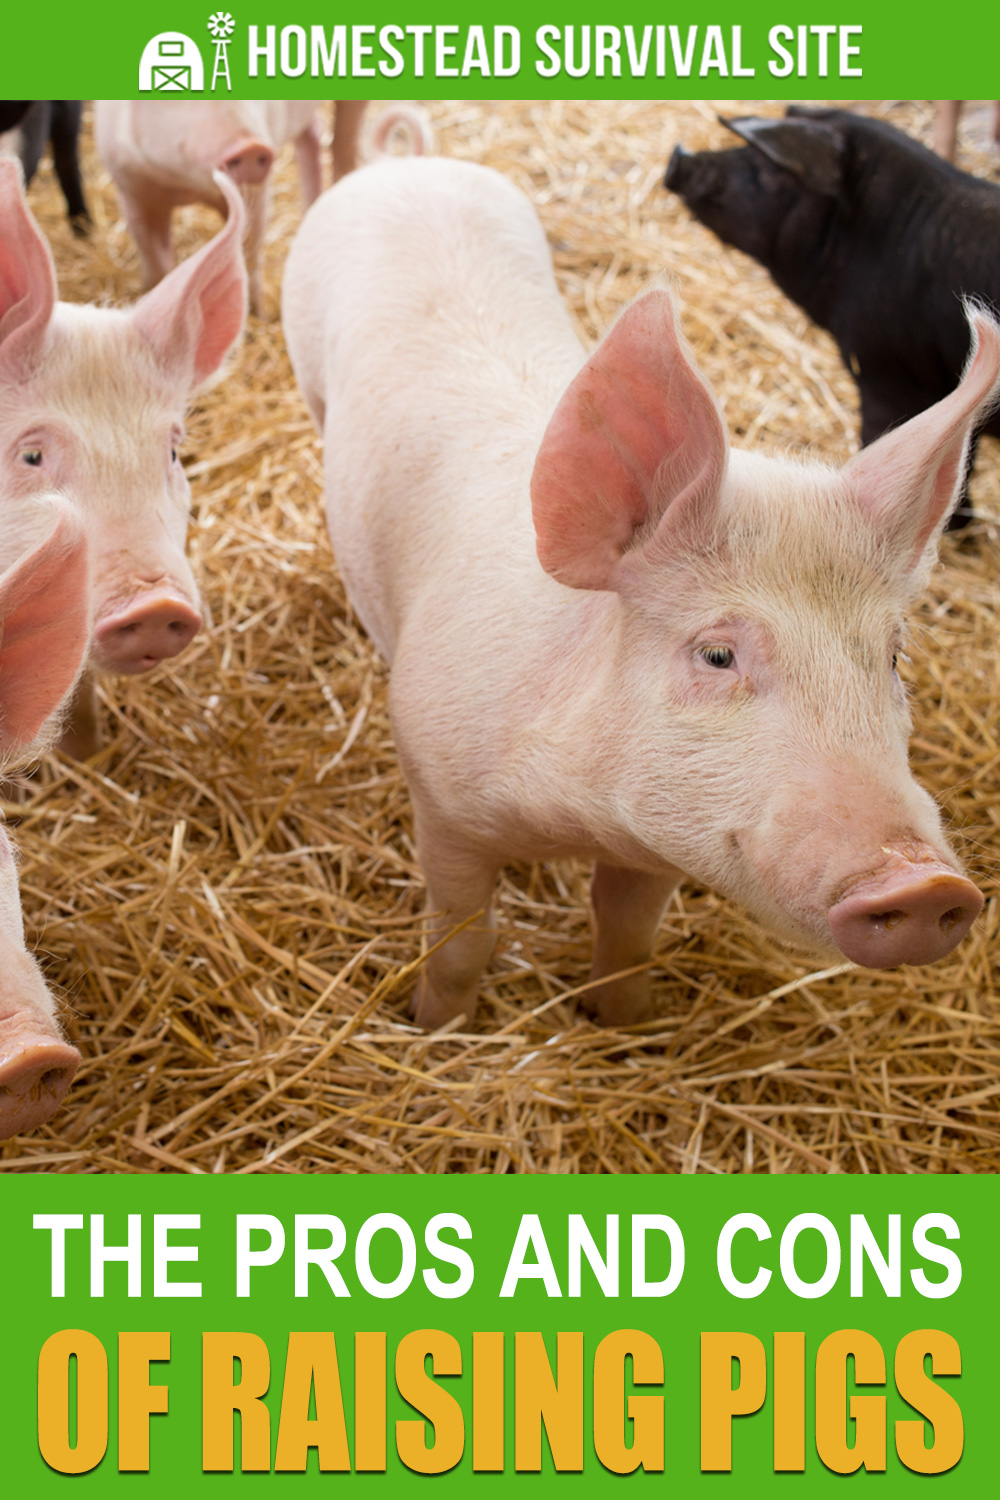 The Pros and Cons of Raising Pigs